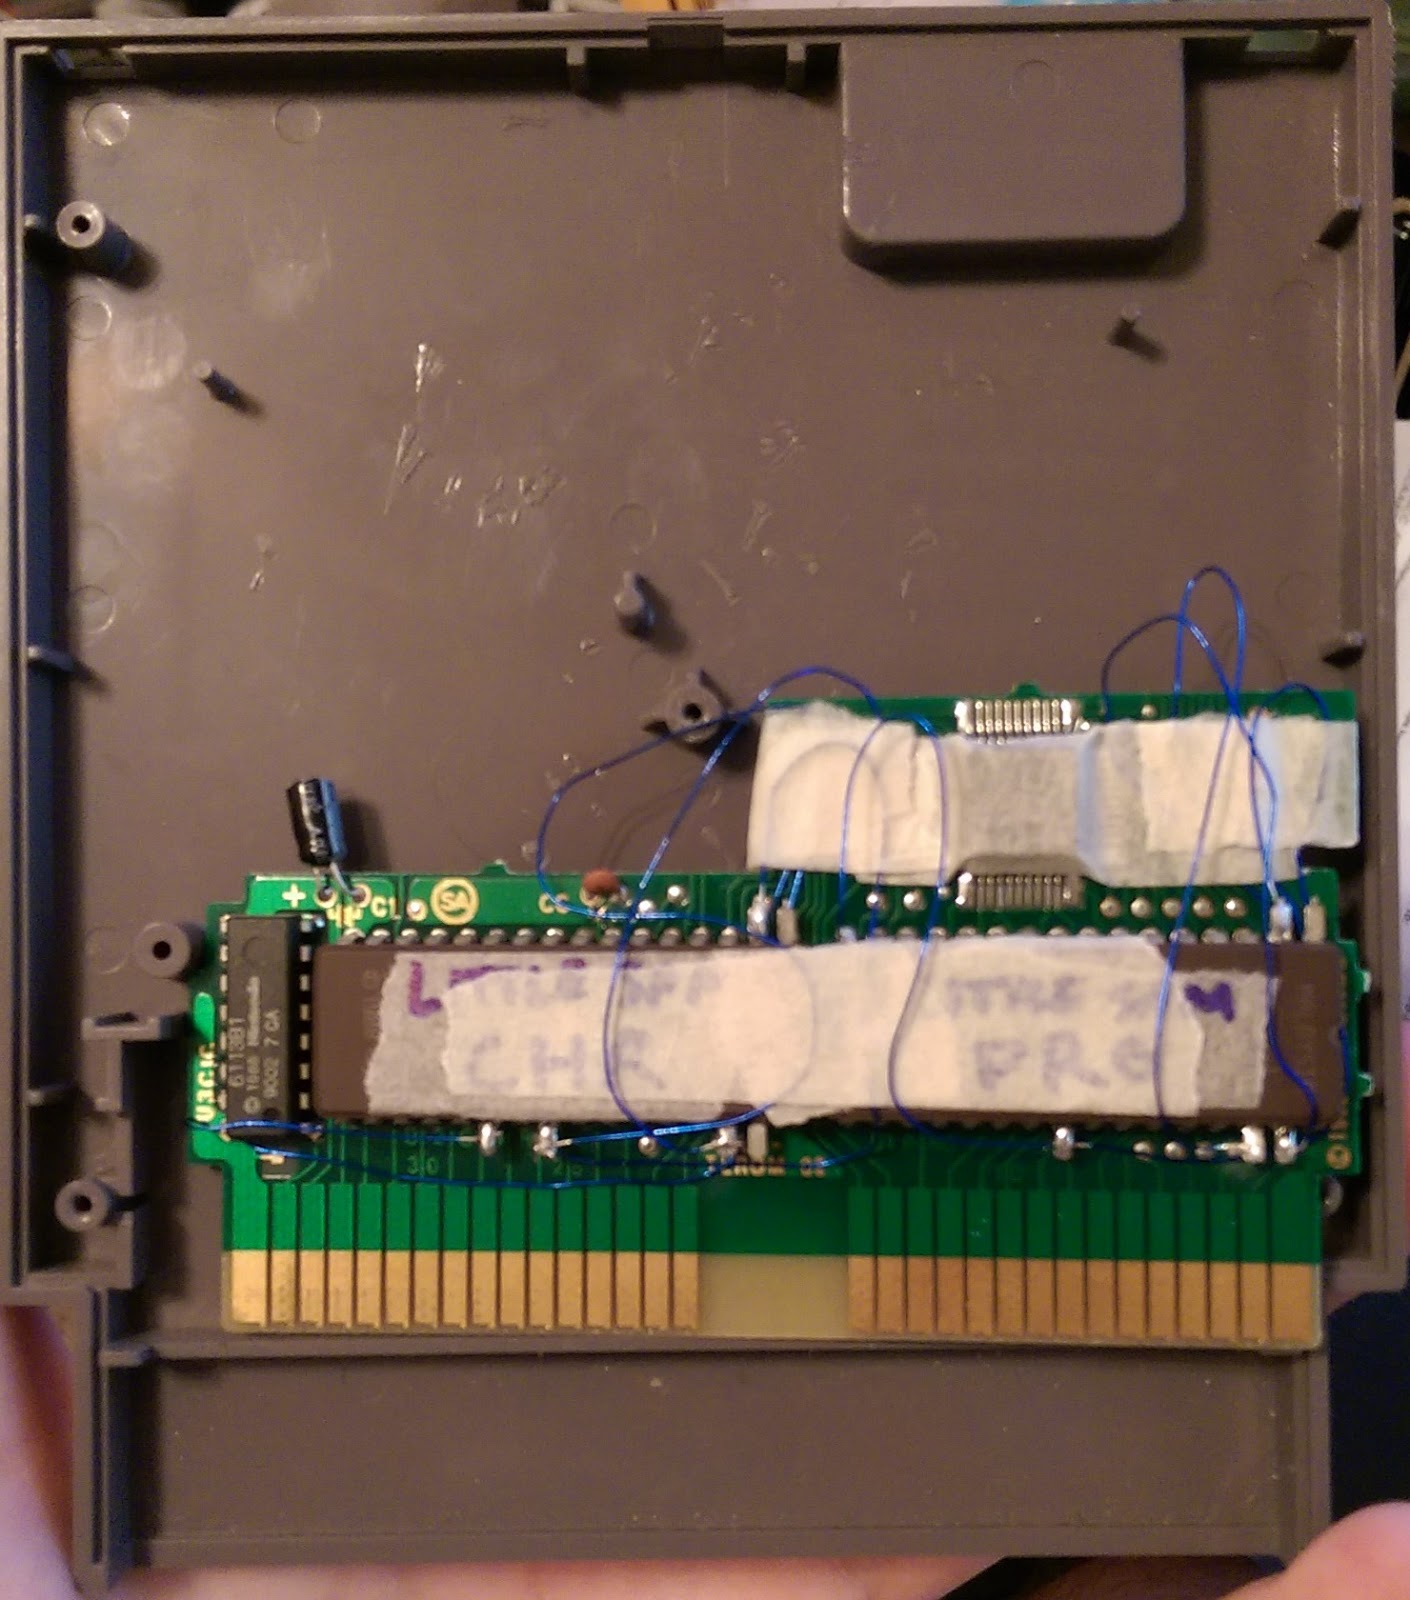 How To Make An Nes Reproduction Cartridge The Poor Student Hobbyist Eprom Programmer Circuit Diagram